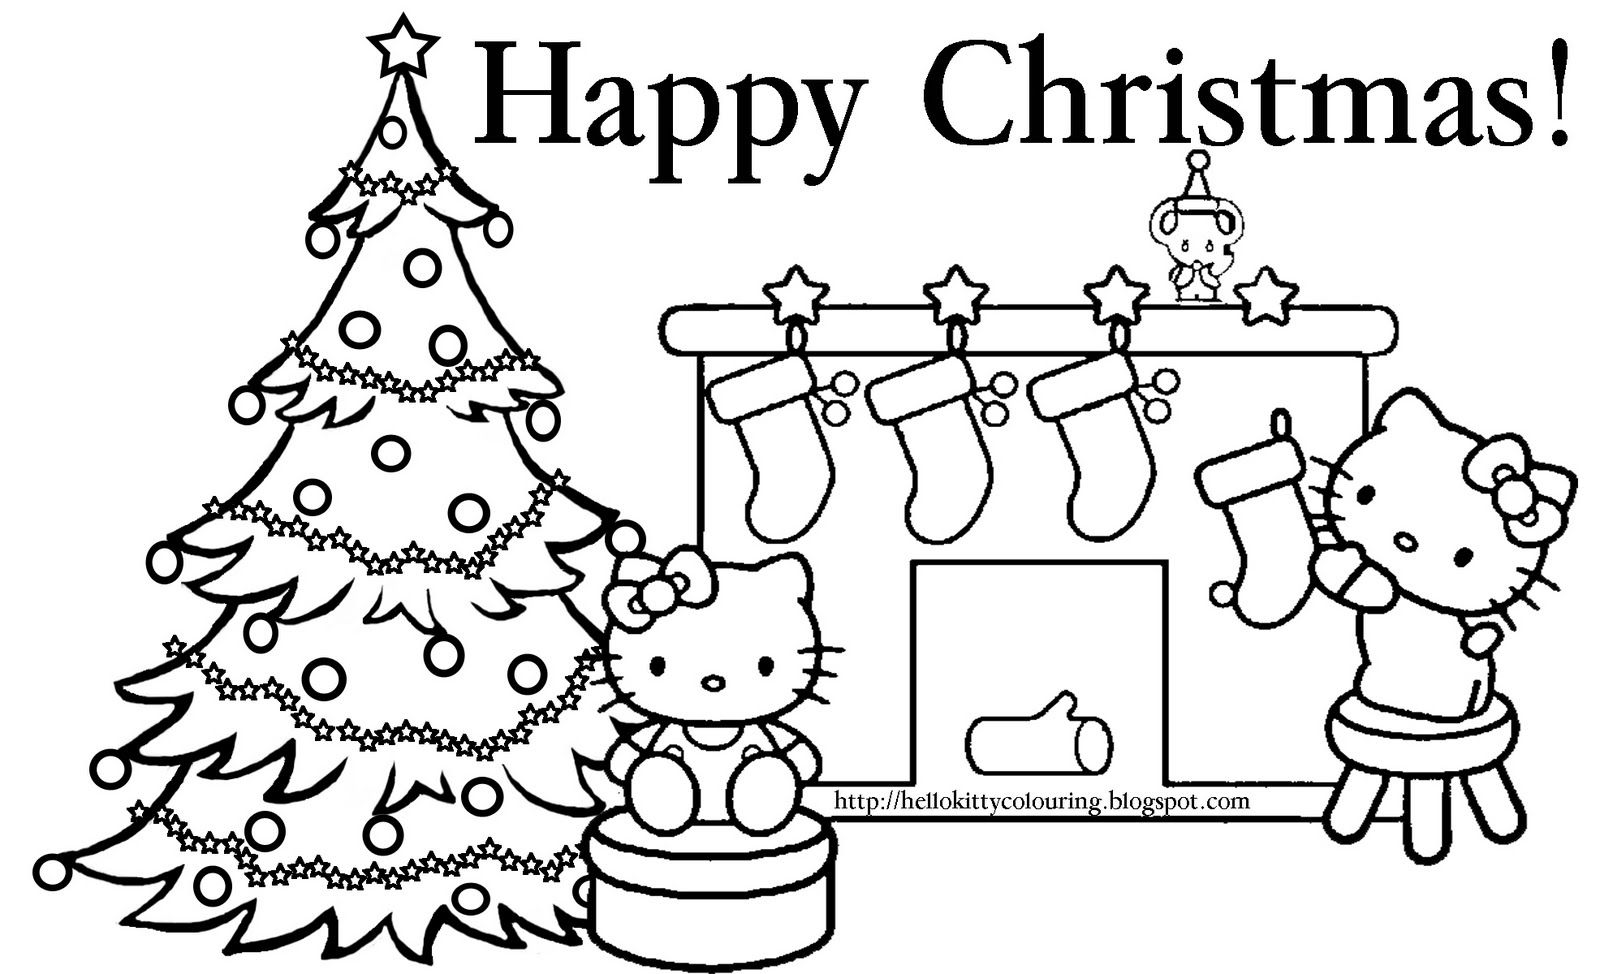 happy christmas coloring page hello kitty - Kitty Coloring Pages